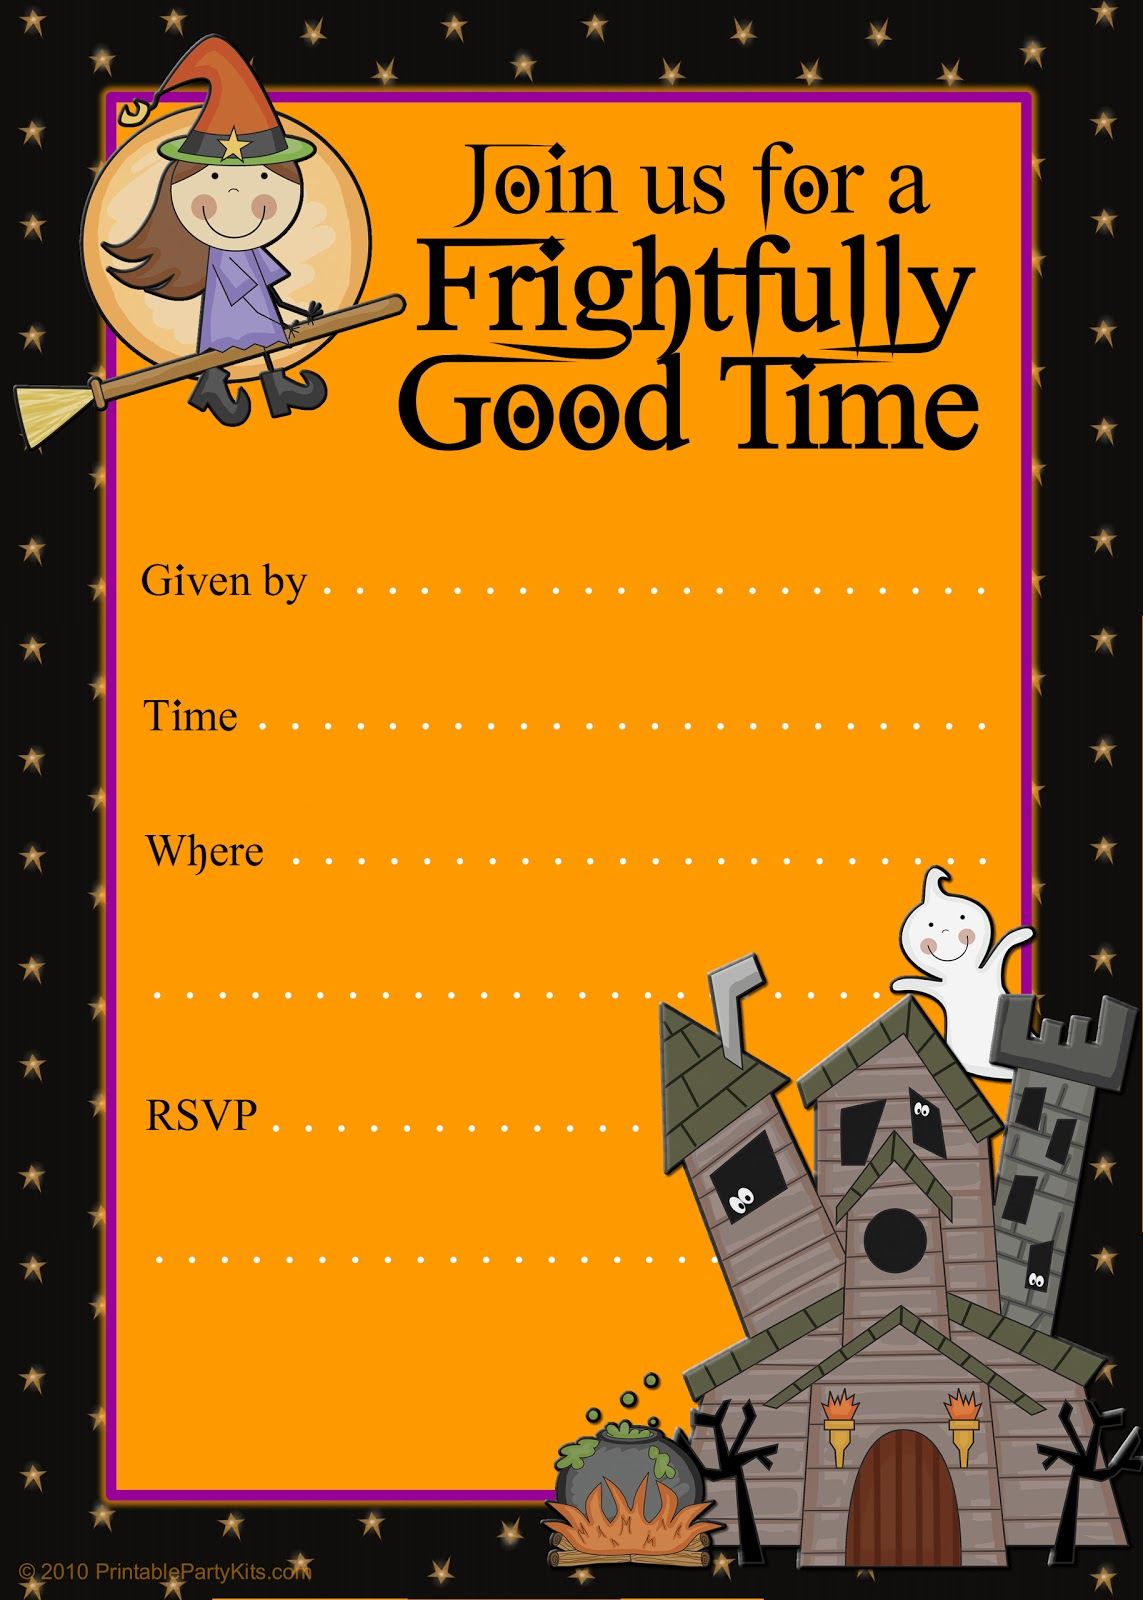 It's just an image of Free Printable Halloween Invitations regarding birthday